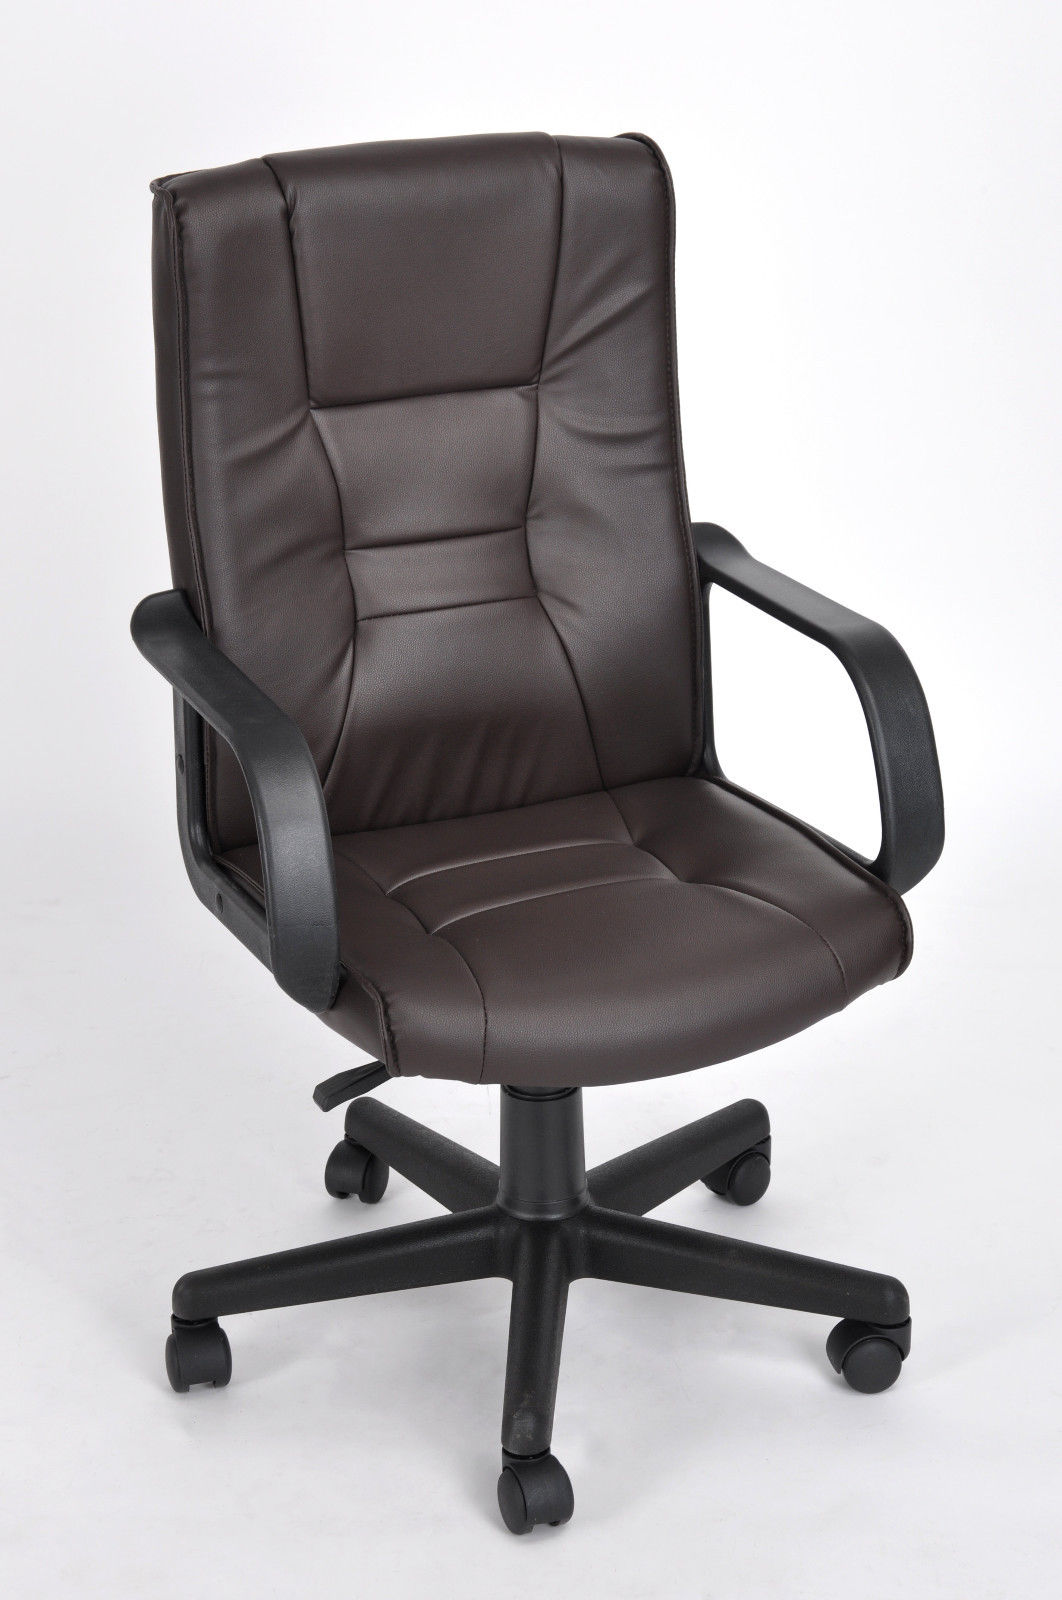 high back pu leather executive office desk task computer chair with arms brown ebay. Black Bedroom Furniture Sets. Home Design Ideas